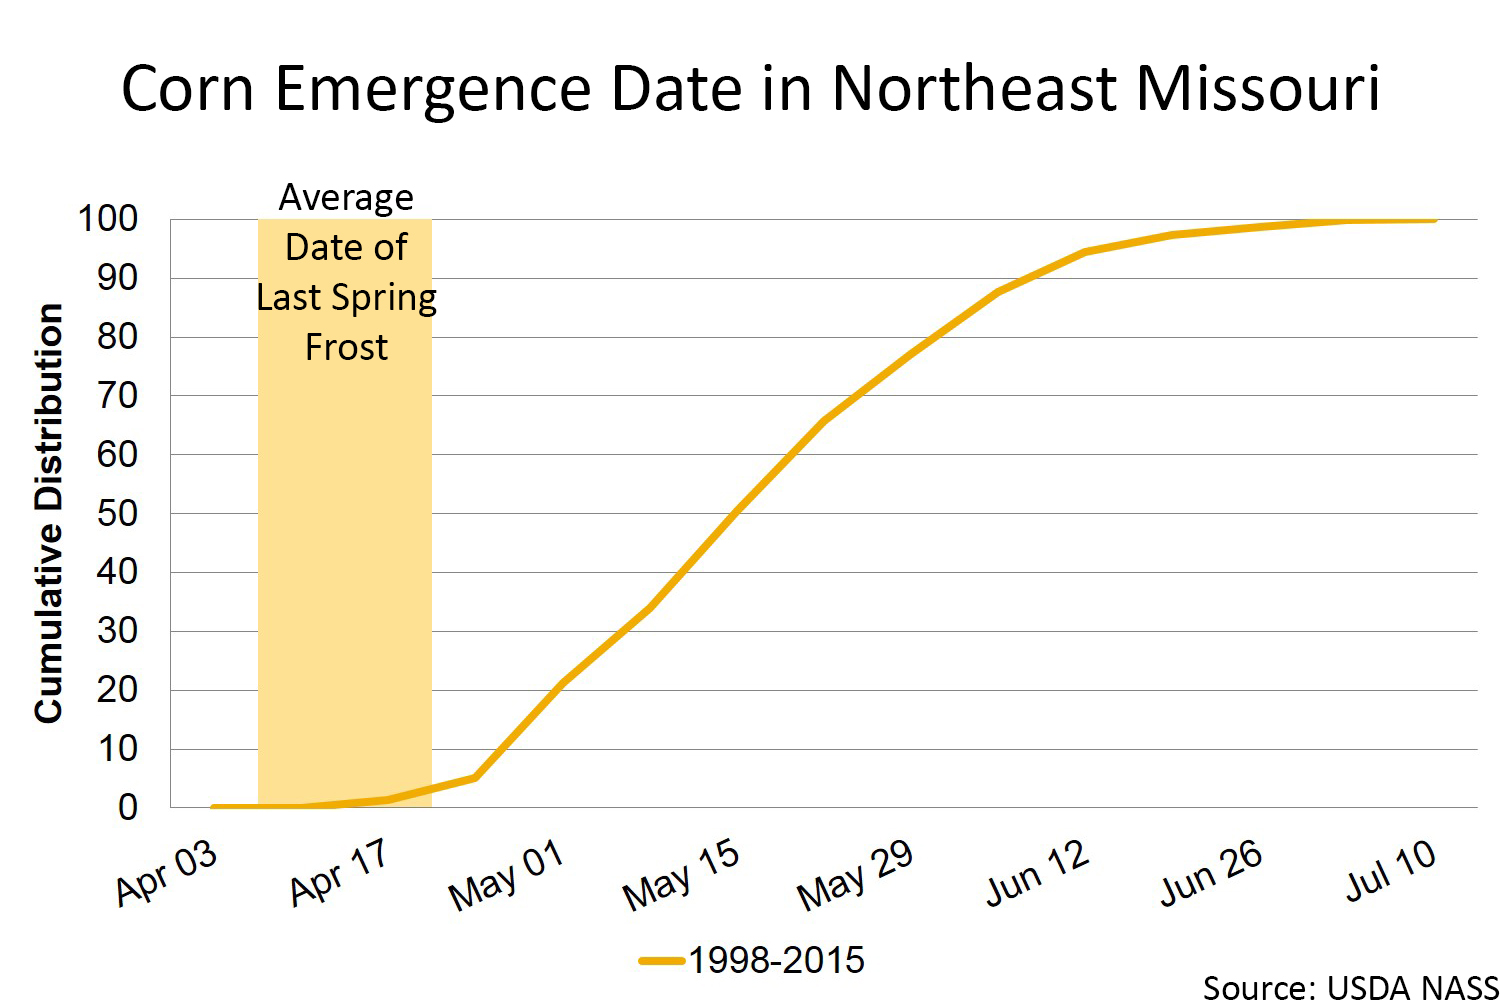 Corn emergence date in northeast Missouri chart